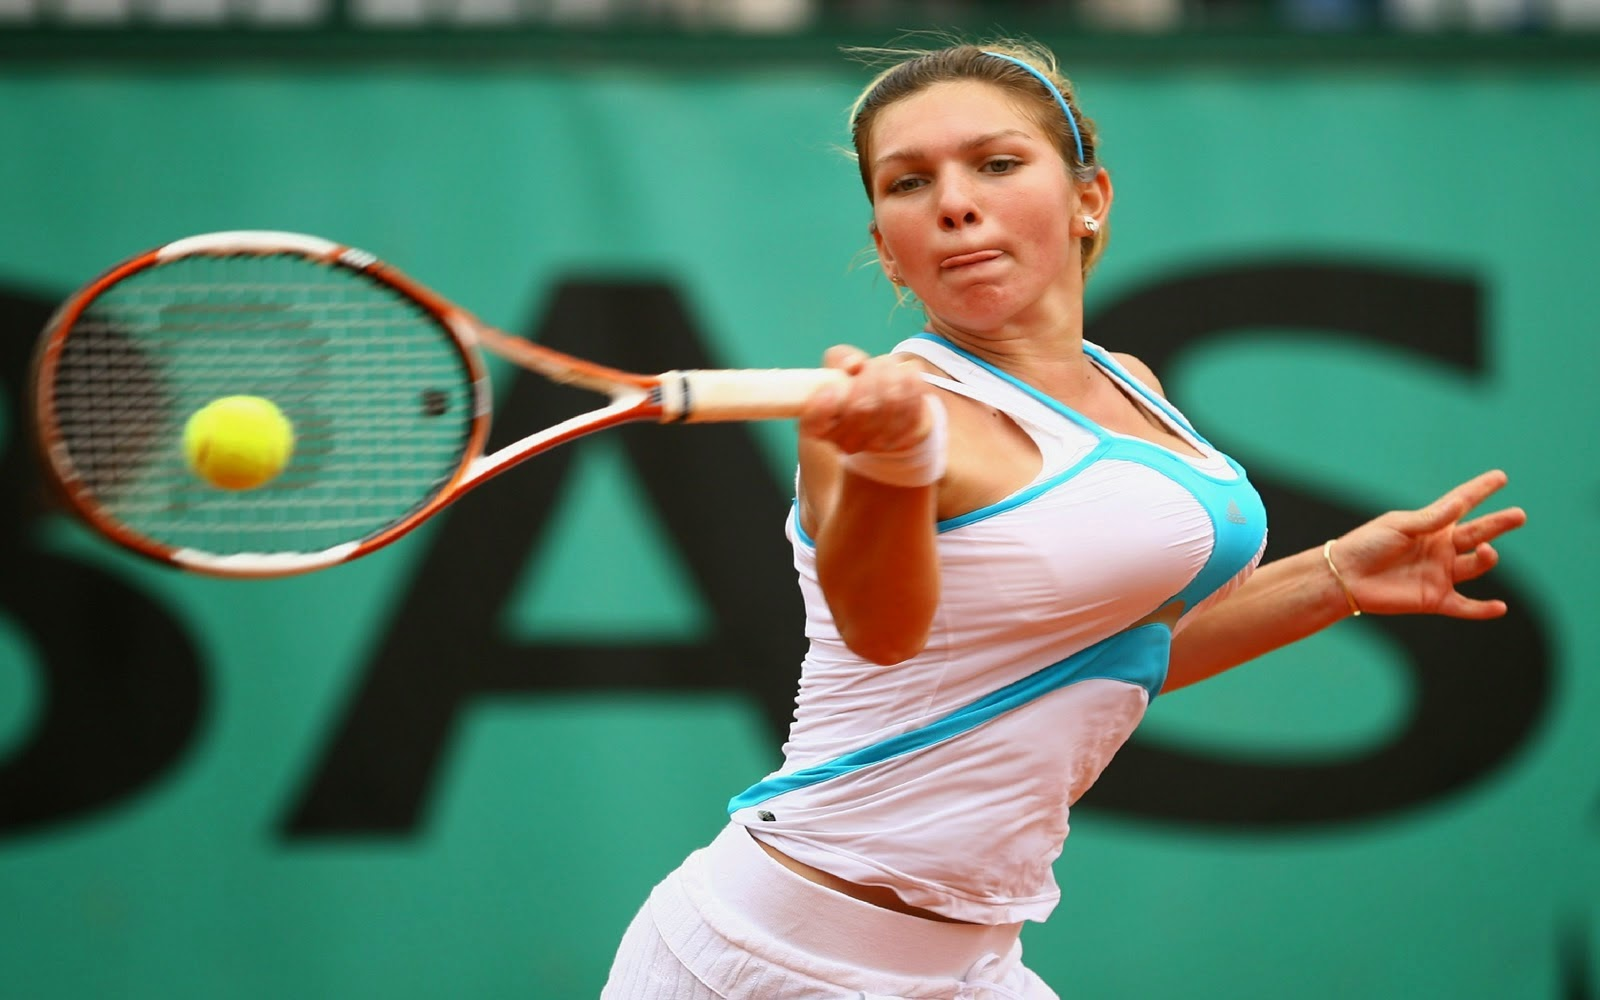 Top seed Simona Halep out of Sydney with illness